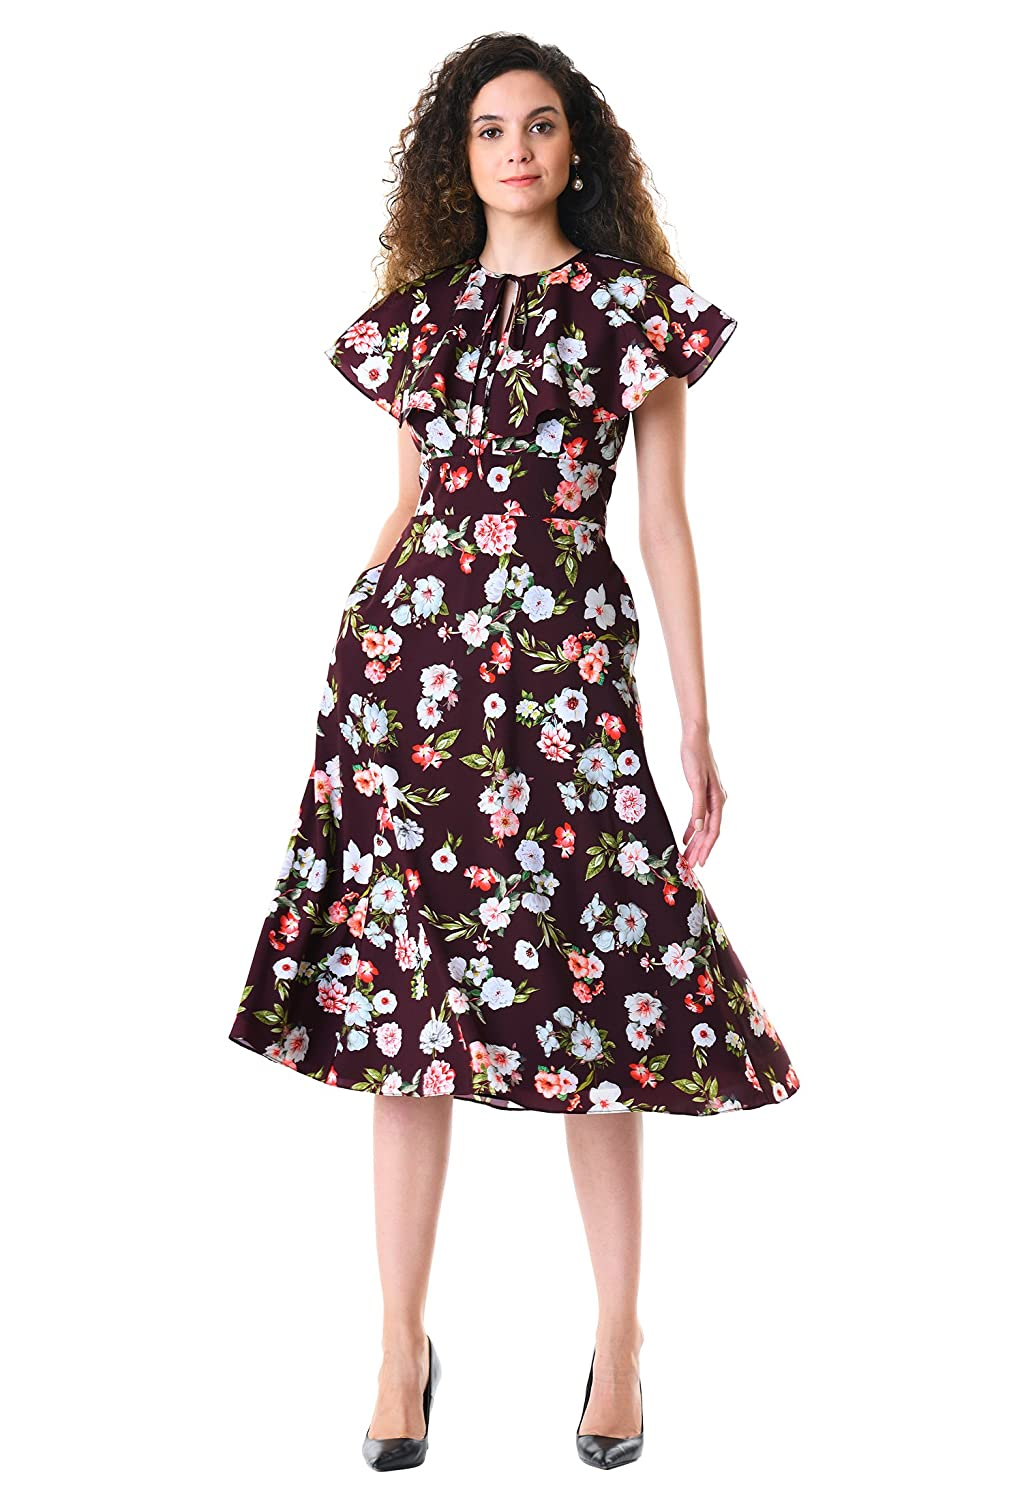 1930s Dresses | 30s Art Deco Dress eShakti Womens Ruffle Floral Print Crepe Dress $79.95 AT vintagedancer.com